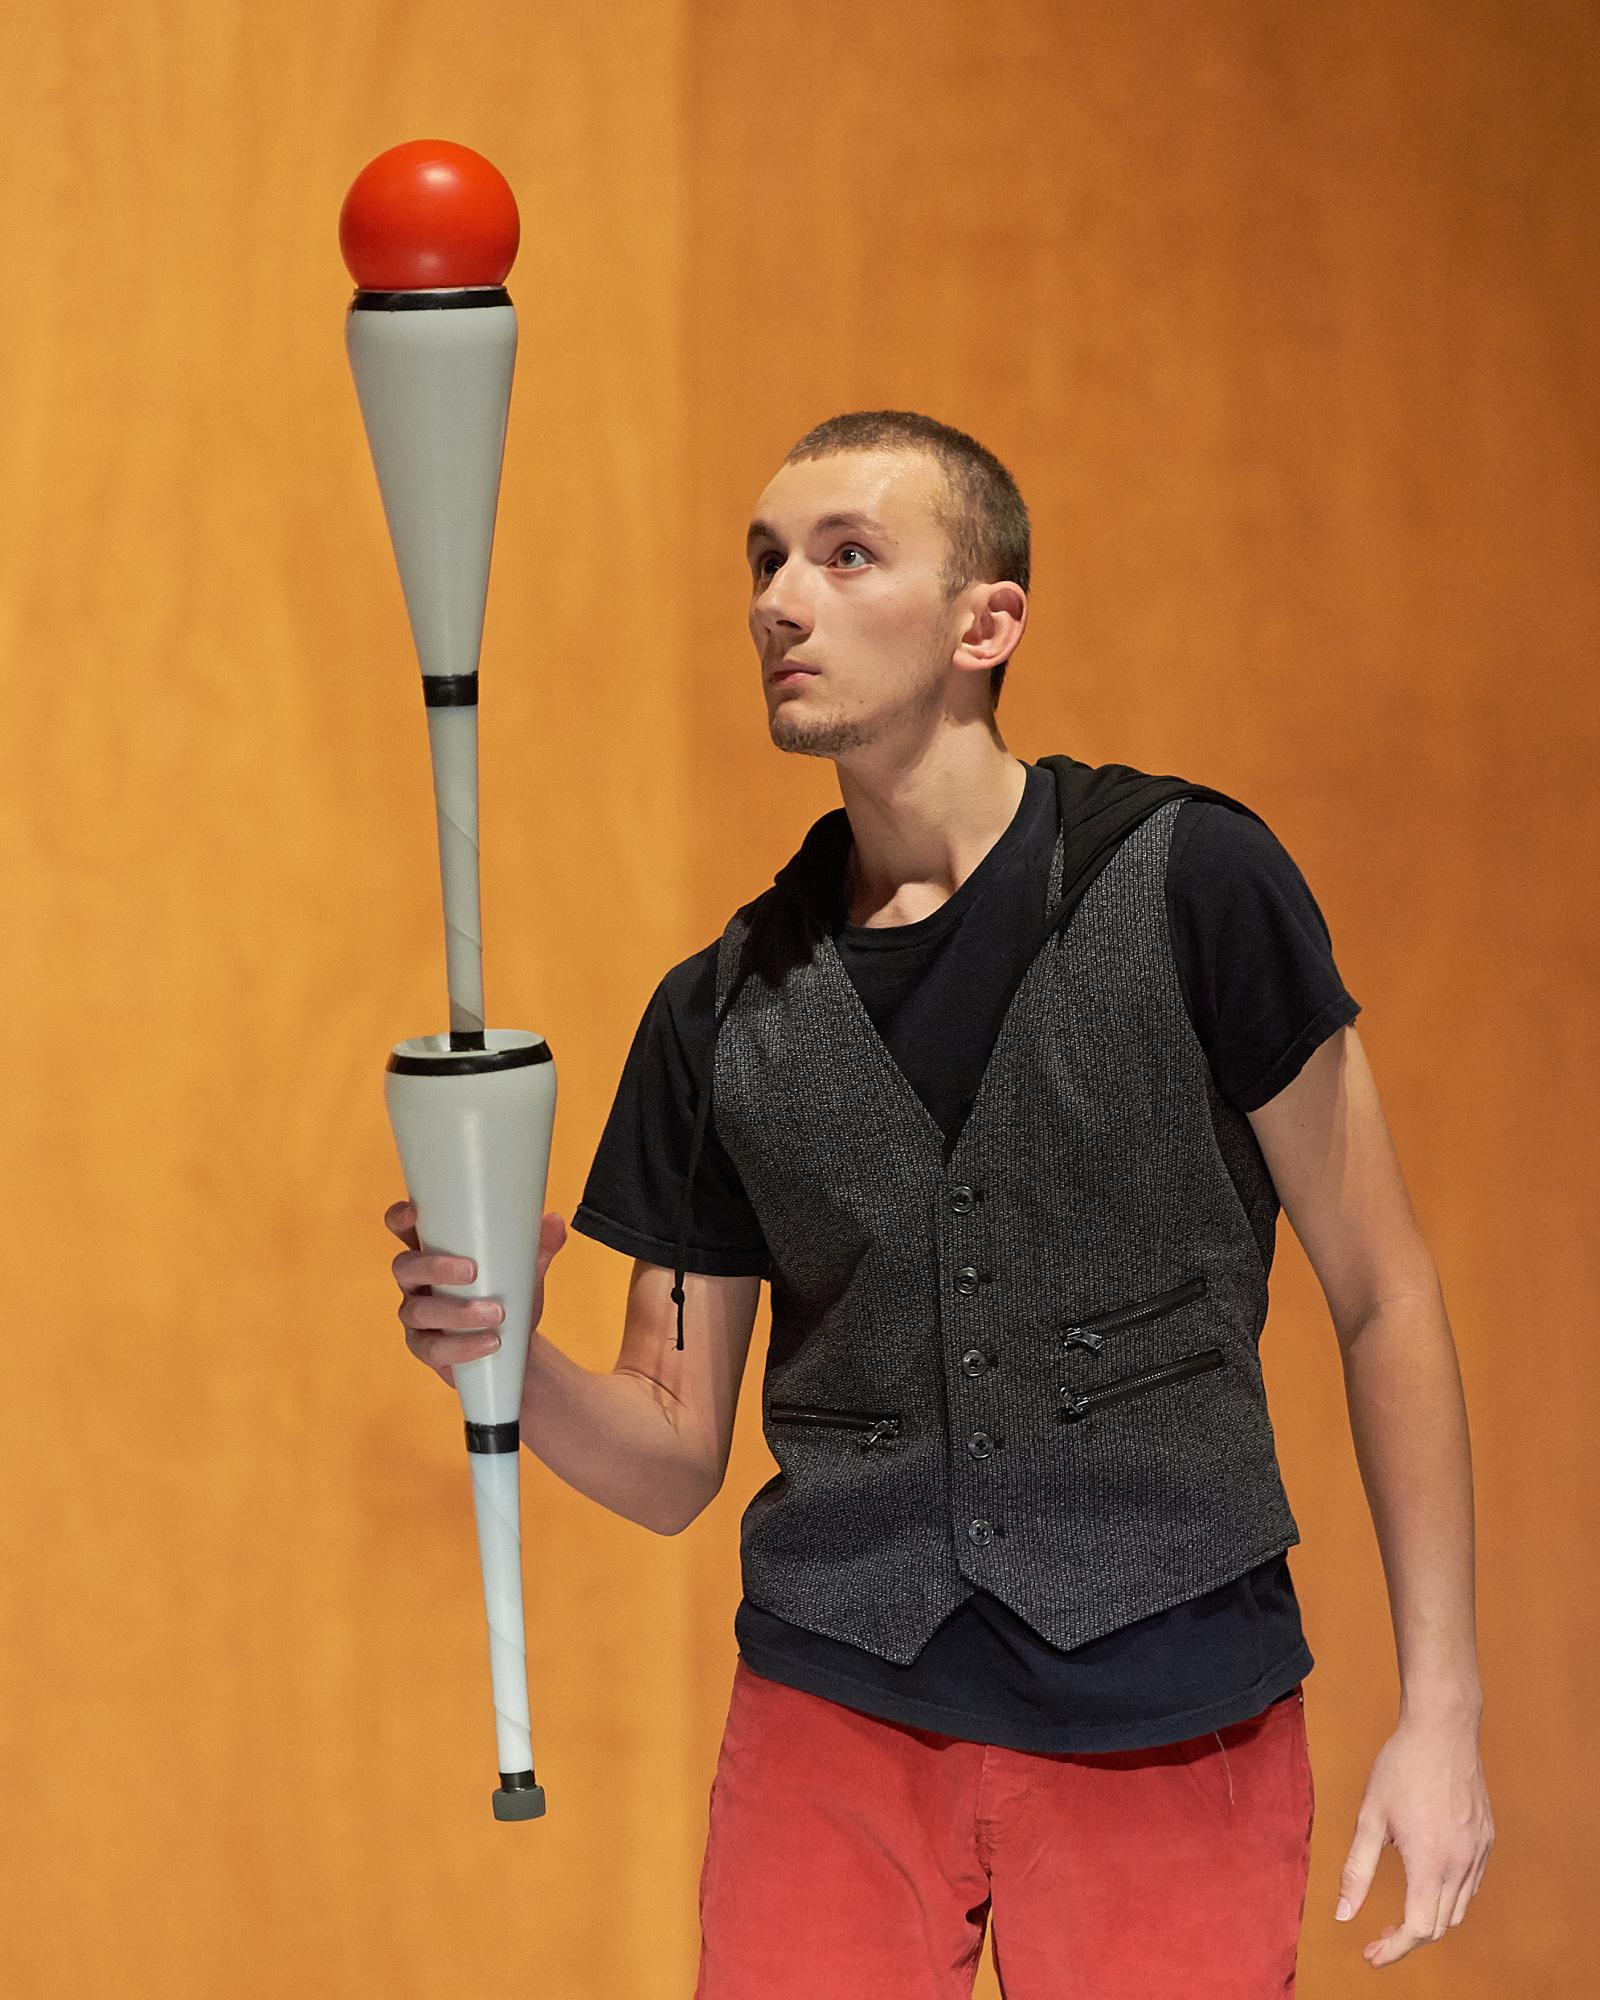 Stephen performing at another NQP  juggling festival